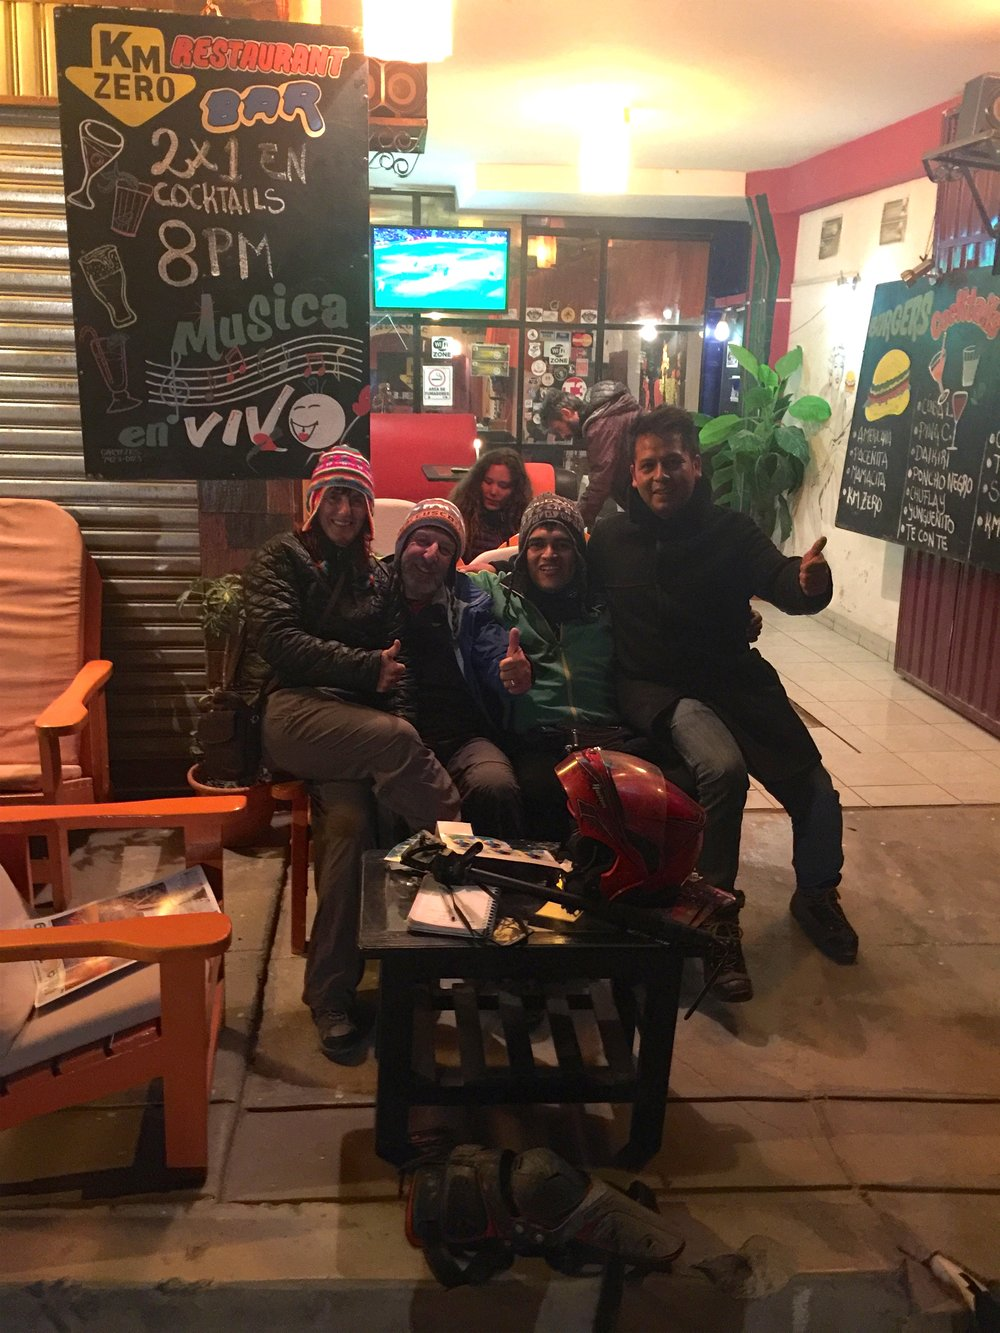 Hangin' with the gang at the local bar - Kilometer Zero is the place to go if you are a motoviajero passing through.